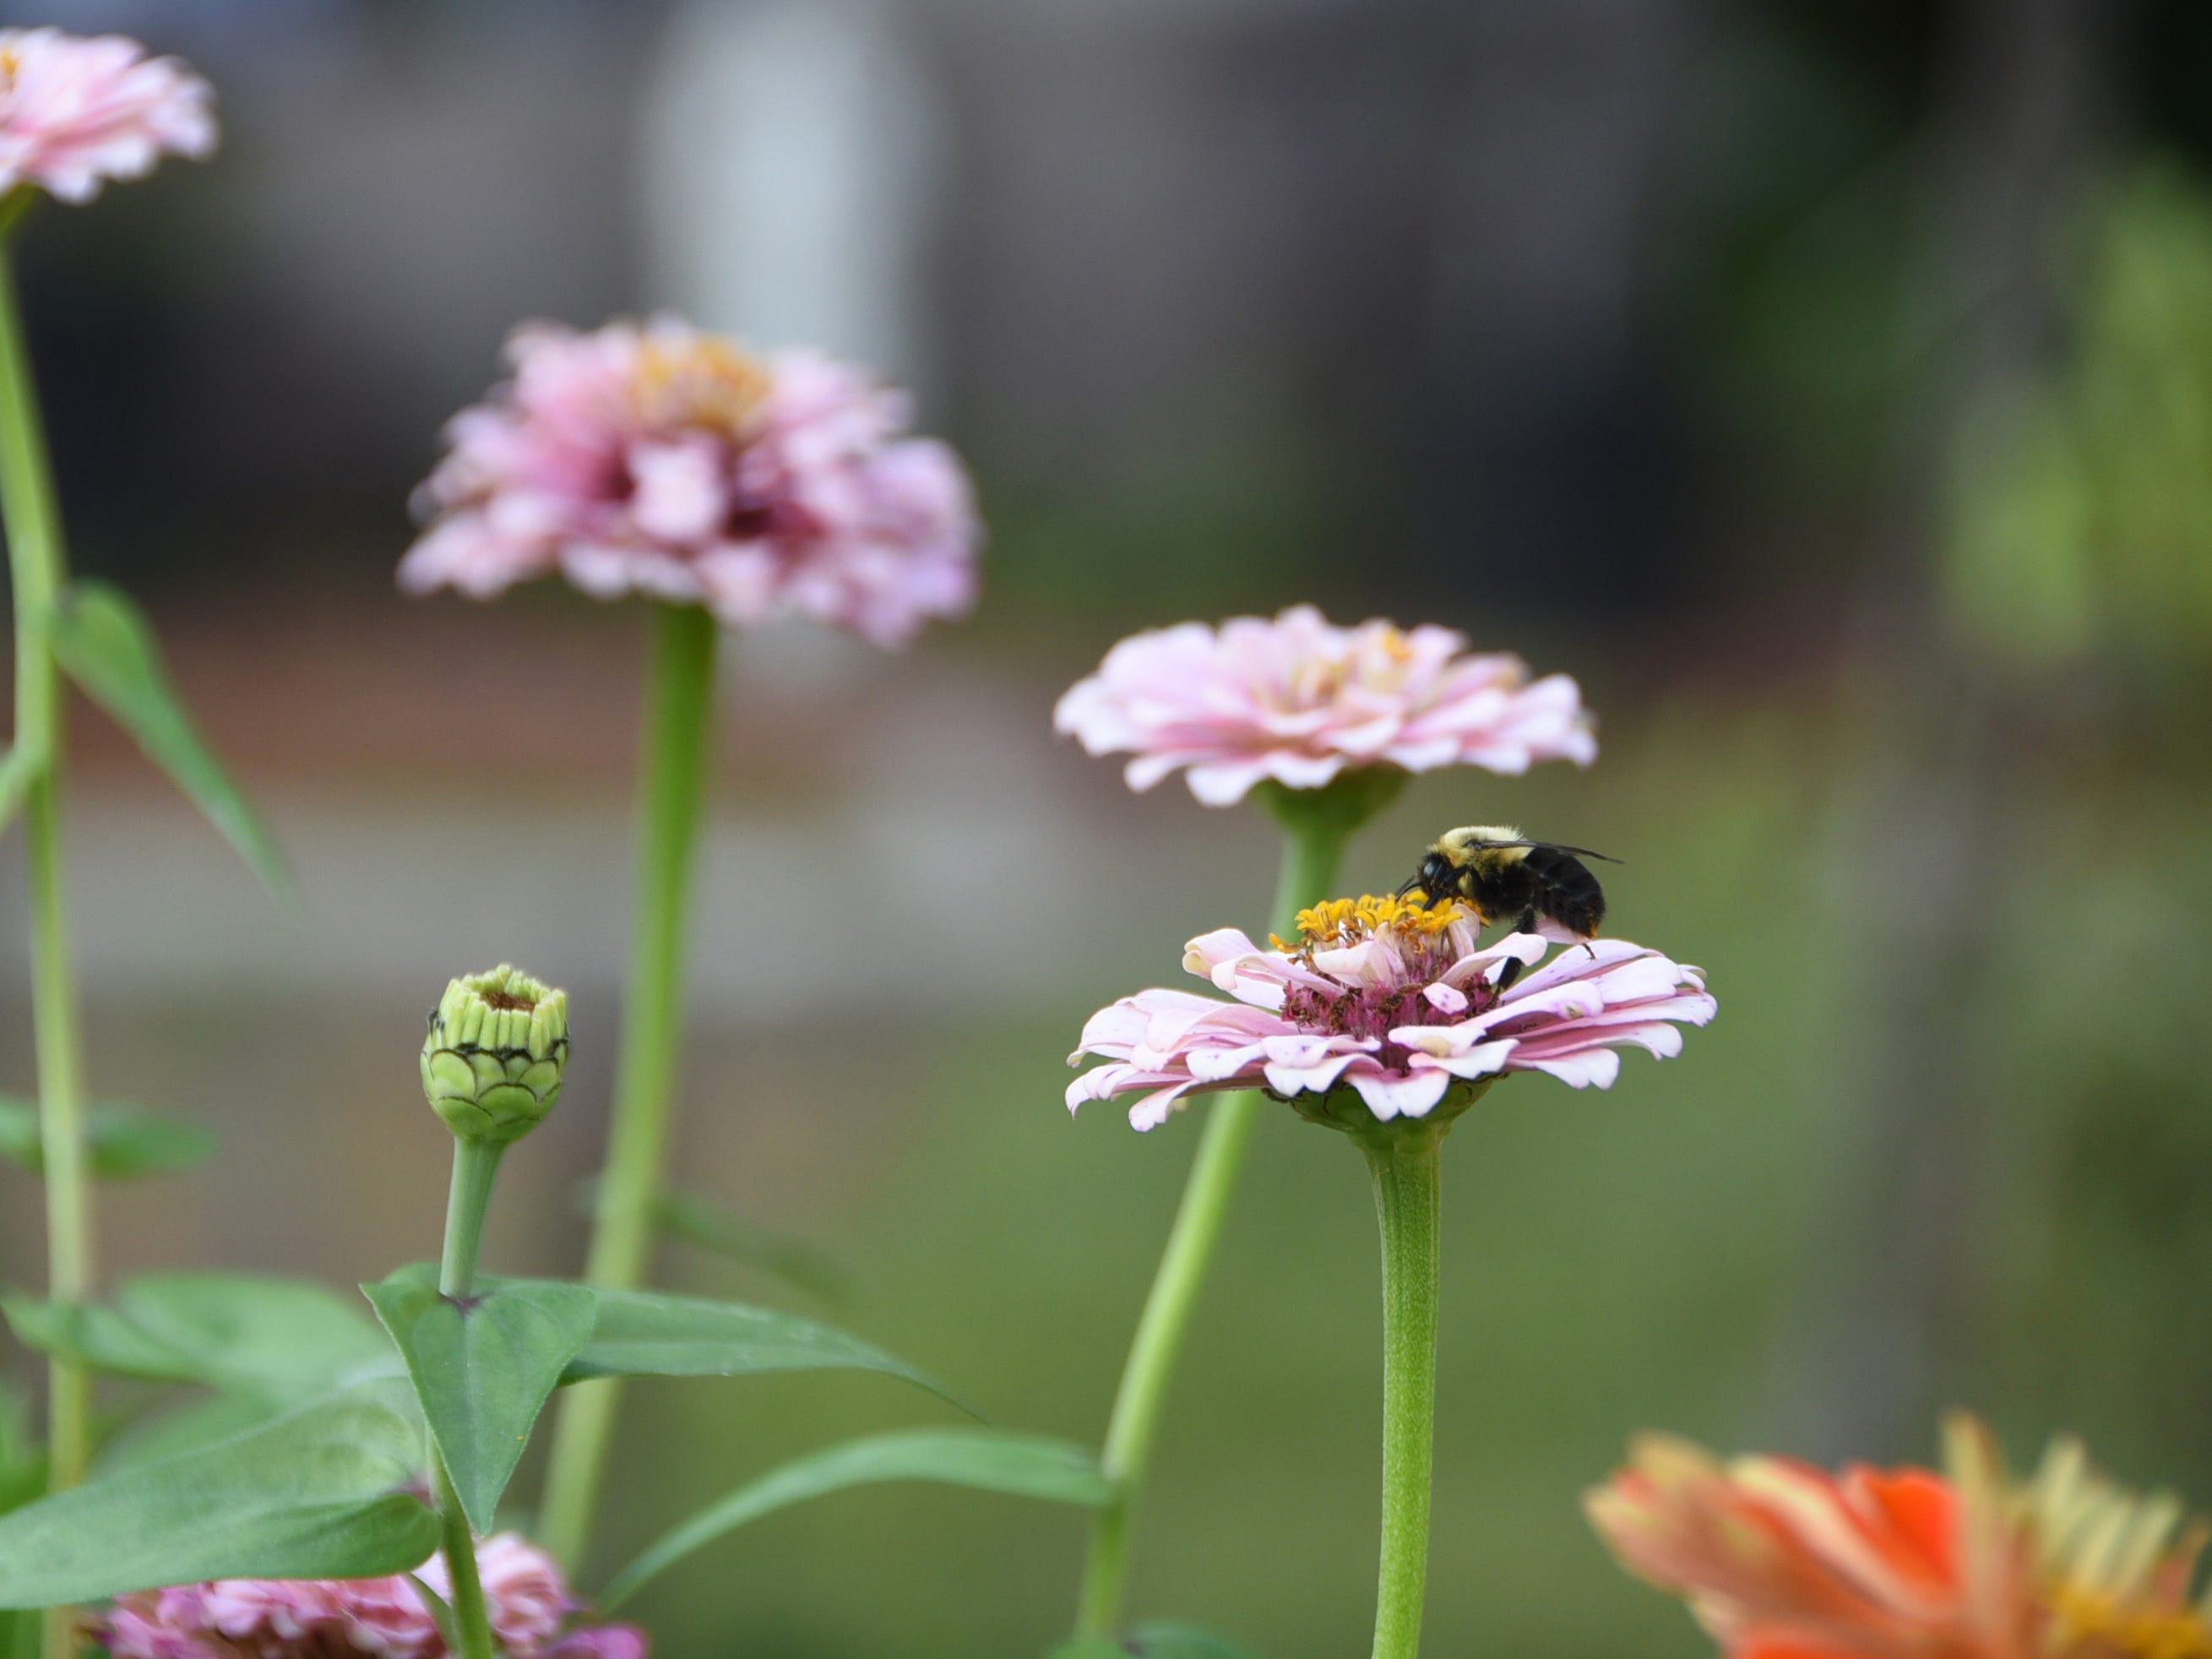 A bee sits on a flower in Eve's Garden in Camden during the #WasteNot for CFET event at the FireWorks Gallery in South Camden on Saturday, September 29, 2018.  The Courier-Post partnered with the Farm & Fisherman Tavern in Cherry Hill and other community organizations to hold the event that offered a special tasting, farm tour and community conversation about reducing food waste.